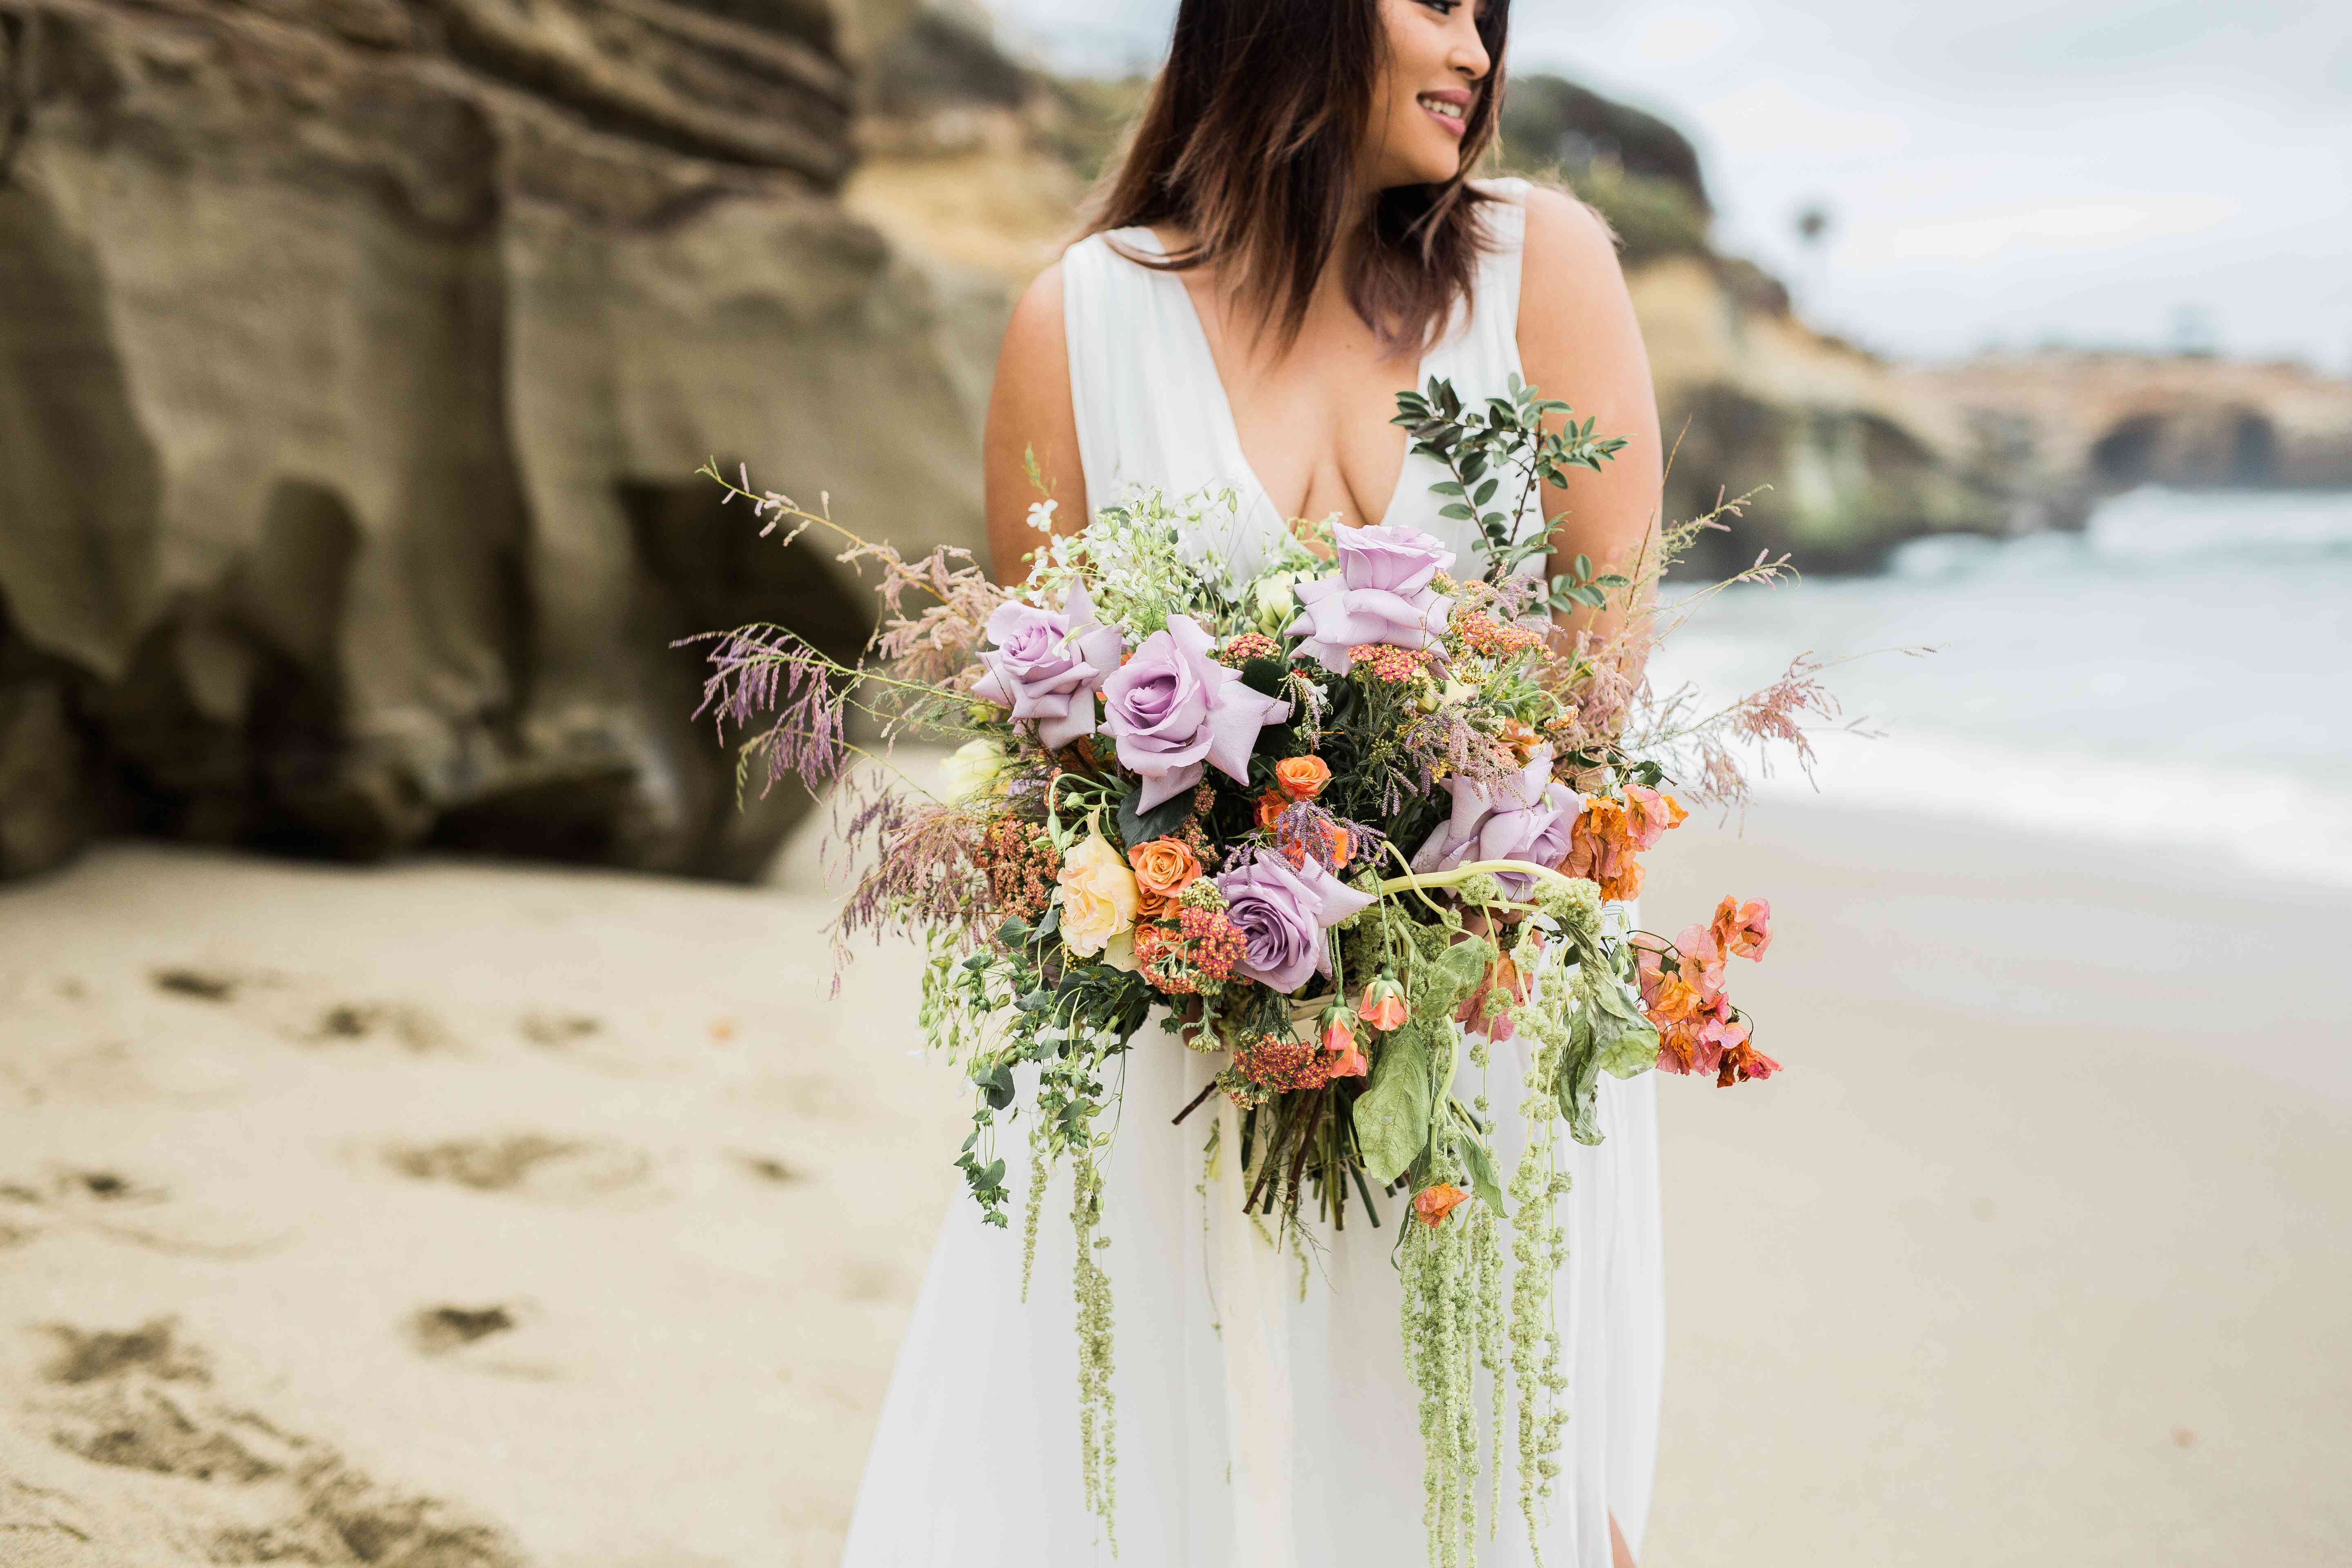 Bride holding a bouquet of purple and orange roses with trailing greens